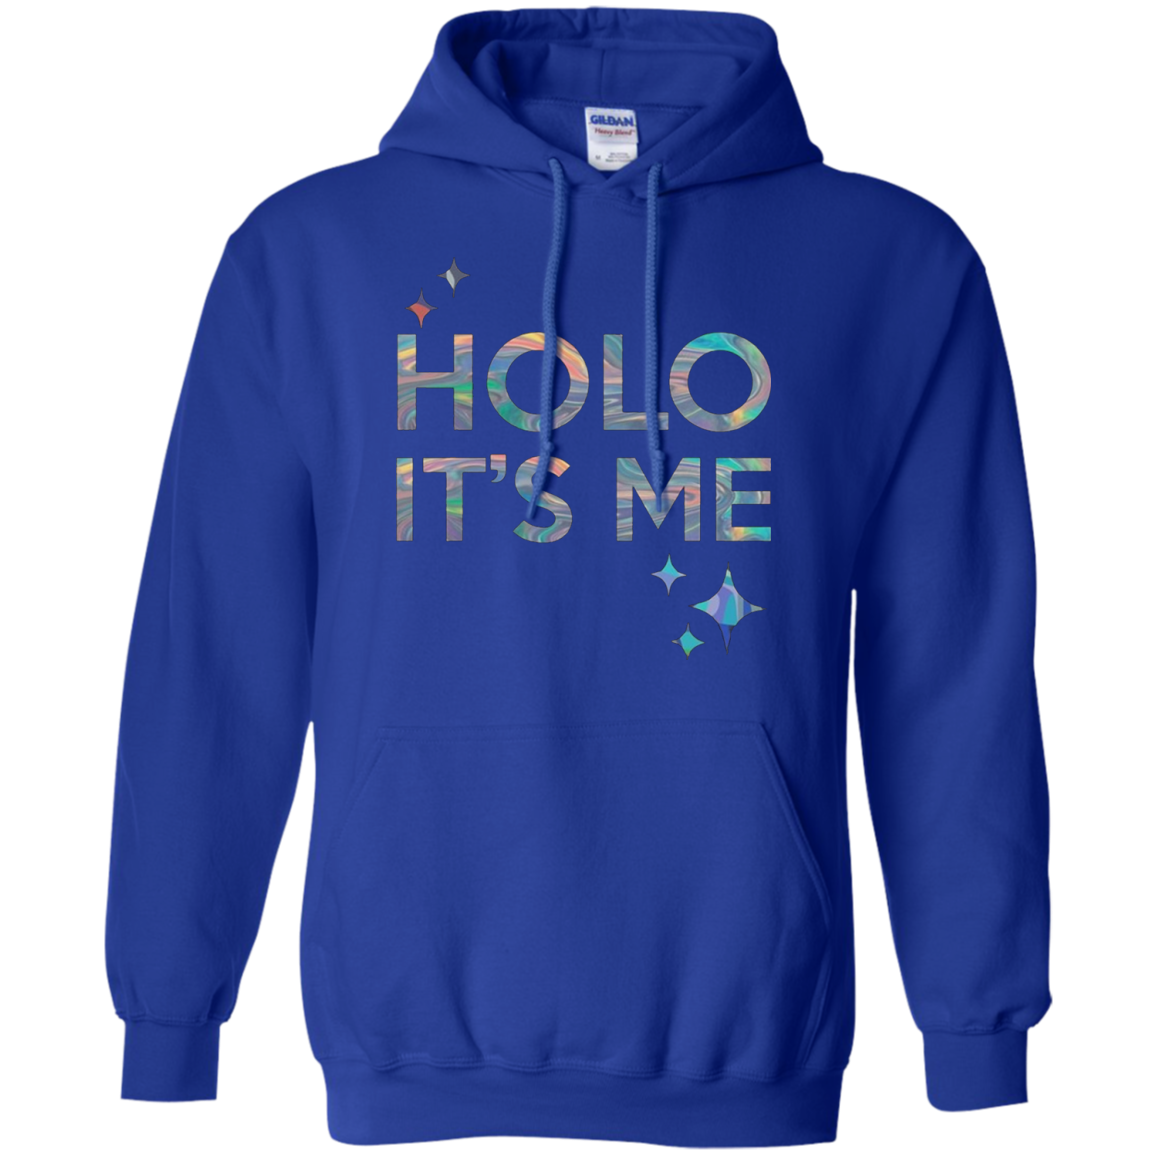 Men's Holo It's Me TShirt